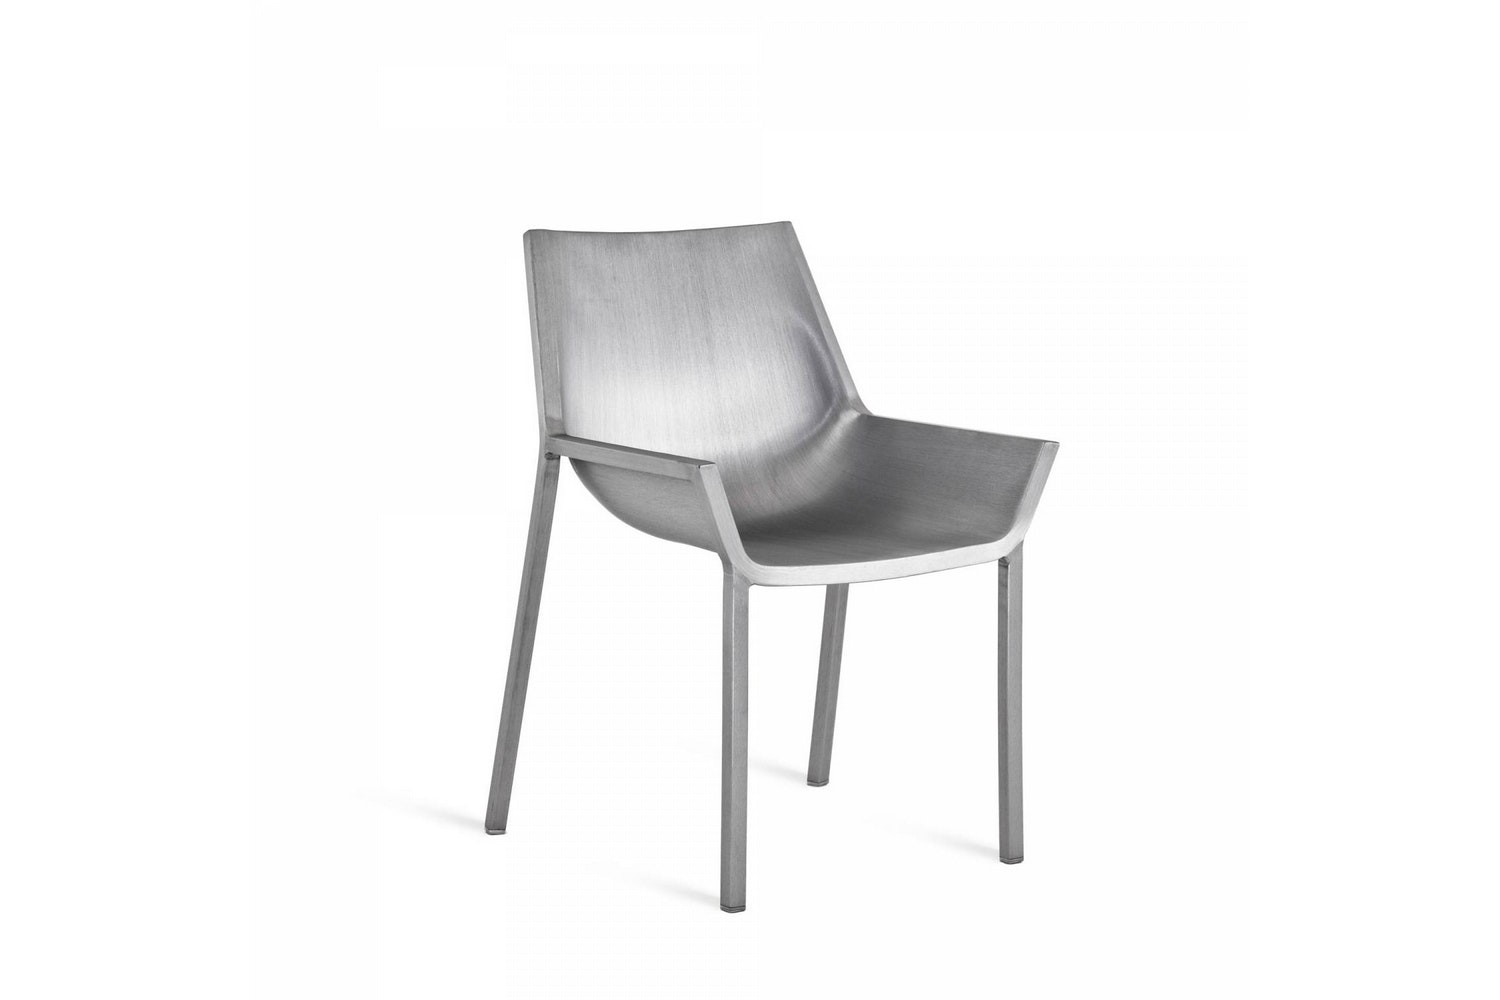 Sezz Chair by Chrisophe Pillet for Emeco